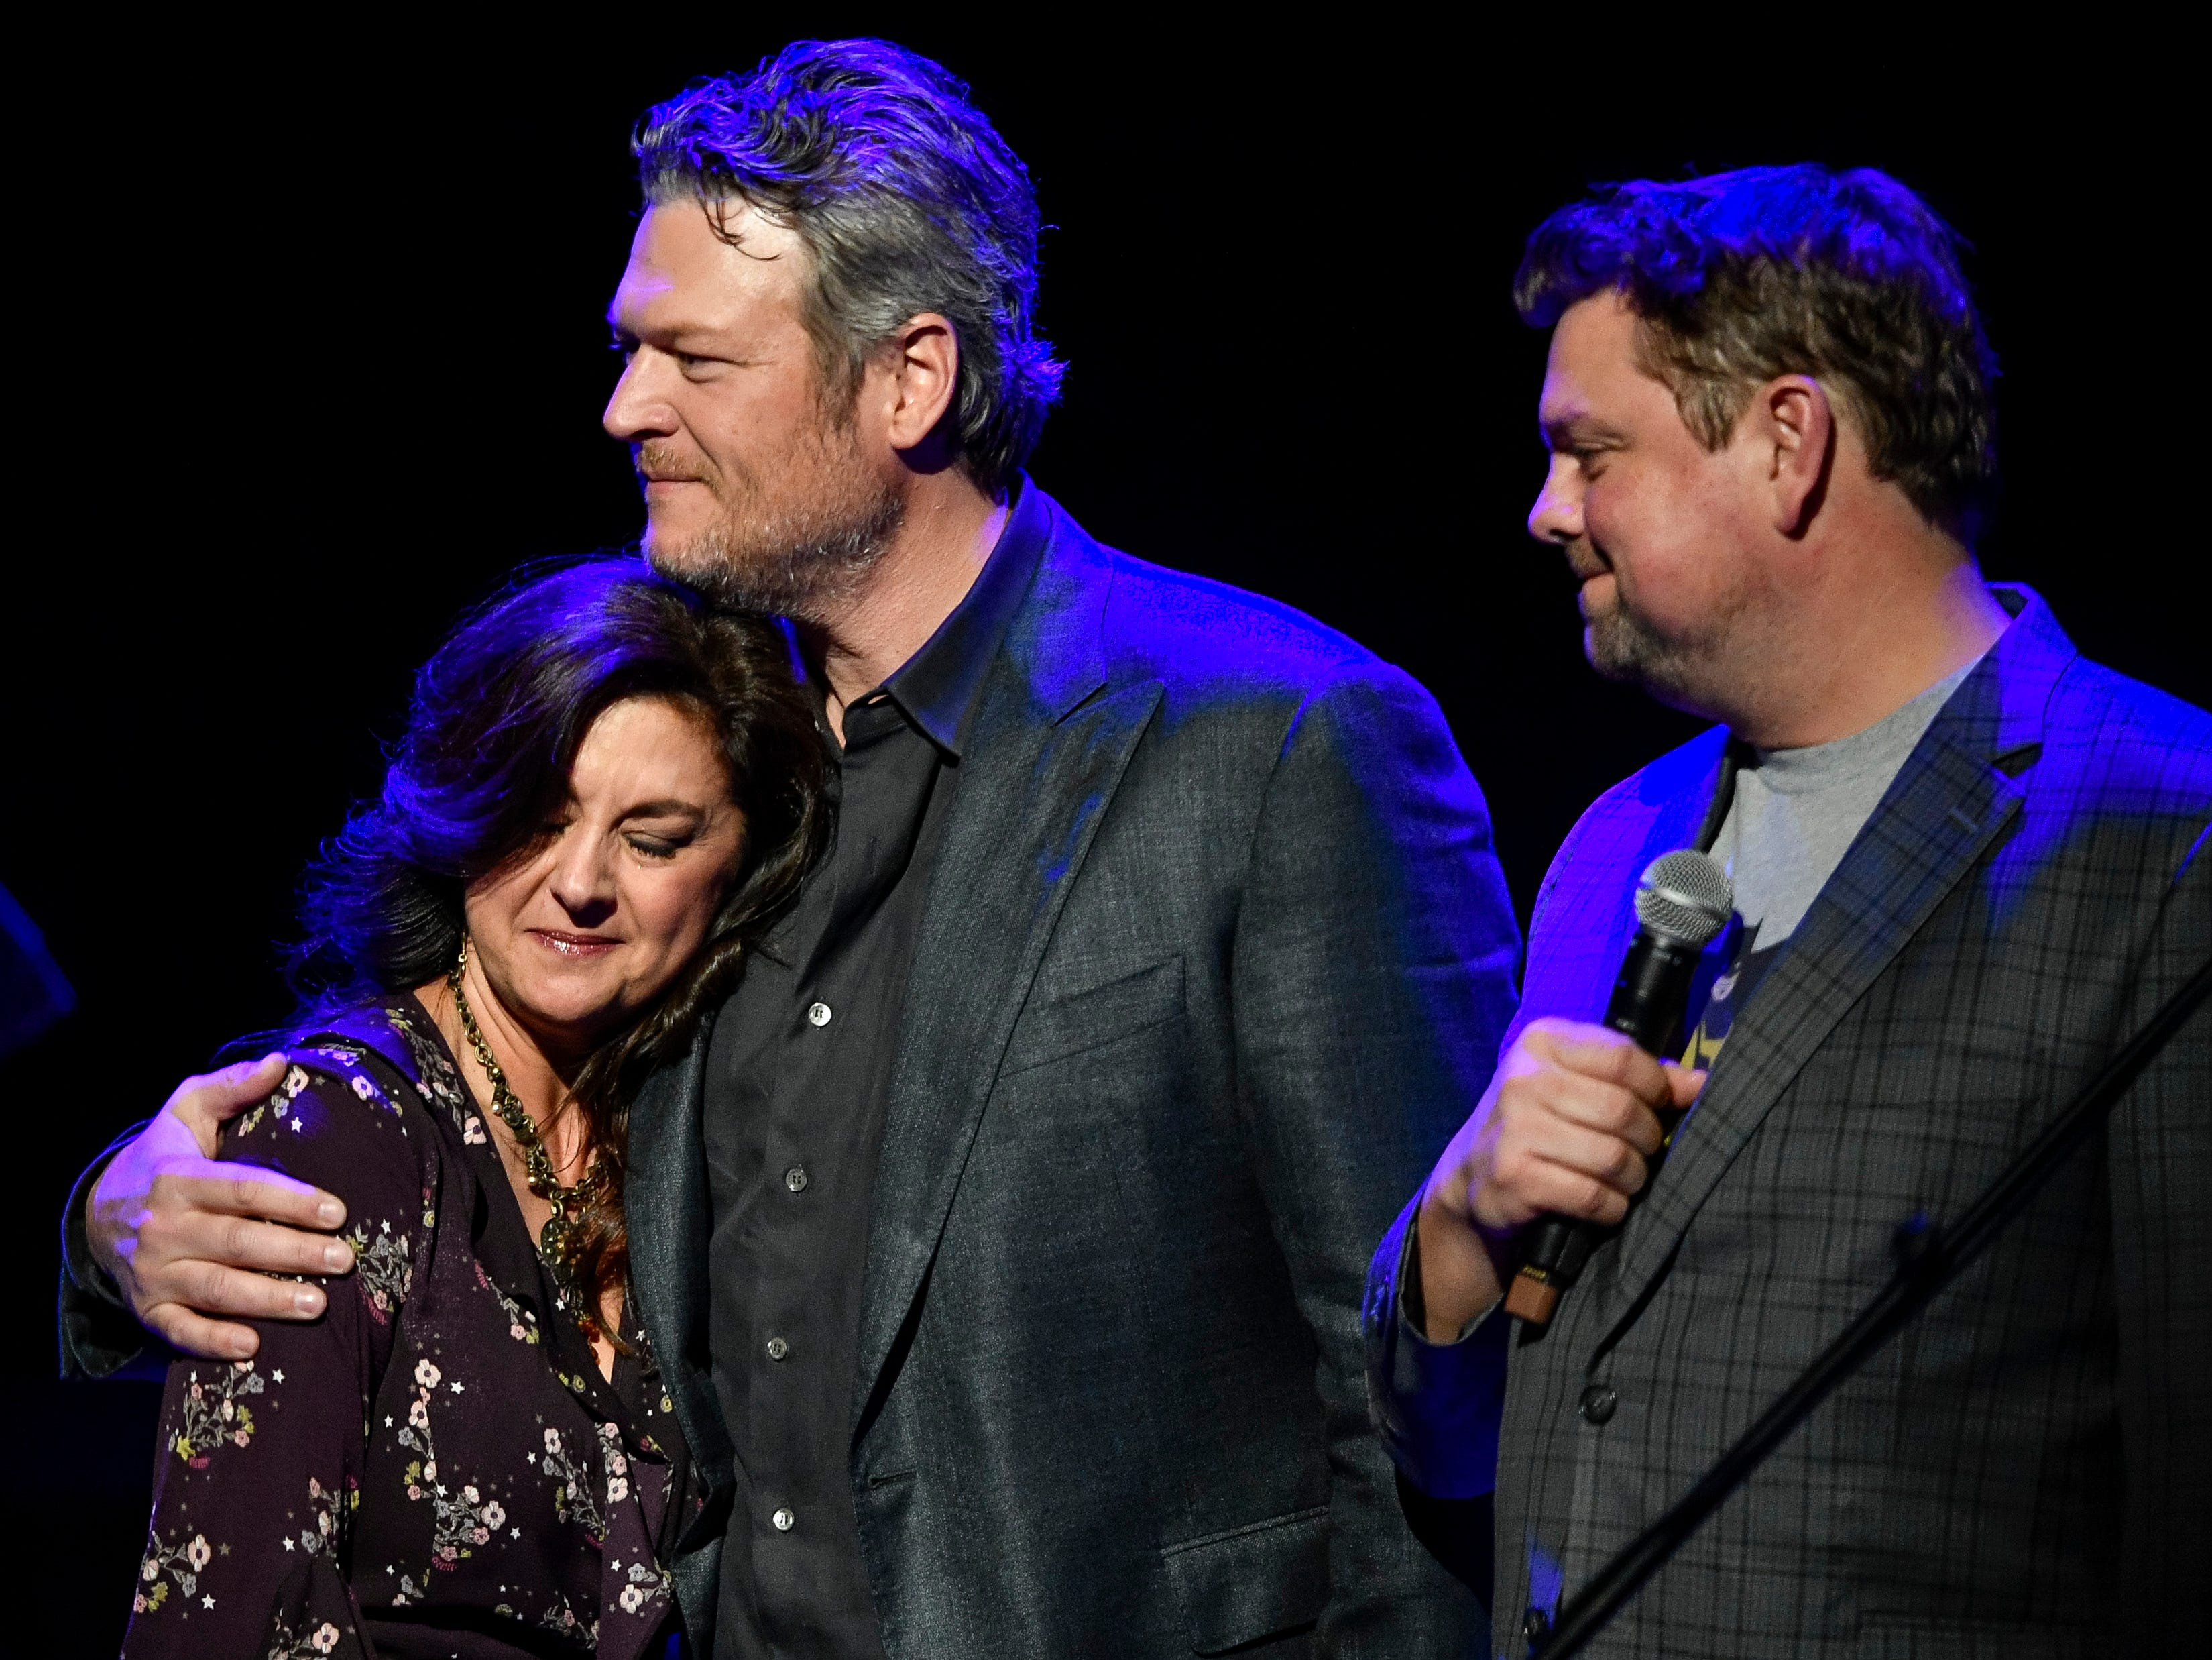 Angie Gentry is hugged by Blake Shelton during the C'Ya On The Flipside Benefit Concert at the Grand Ole Opry House in Nashville, Tenn., Wednesday, Jan. 9, 2019.